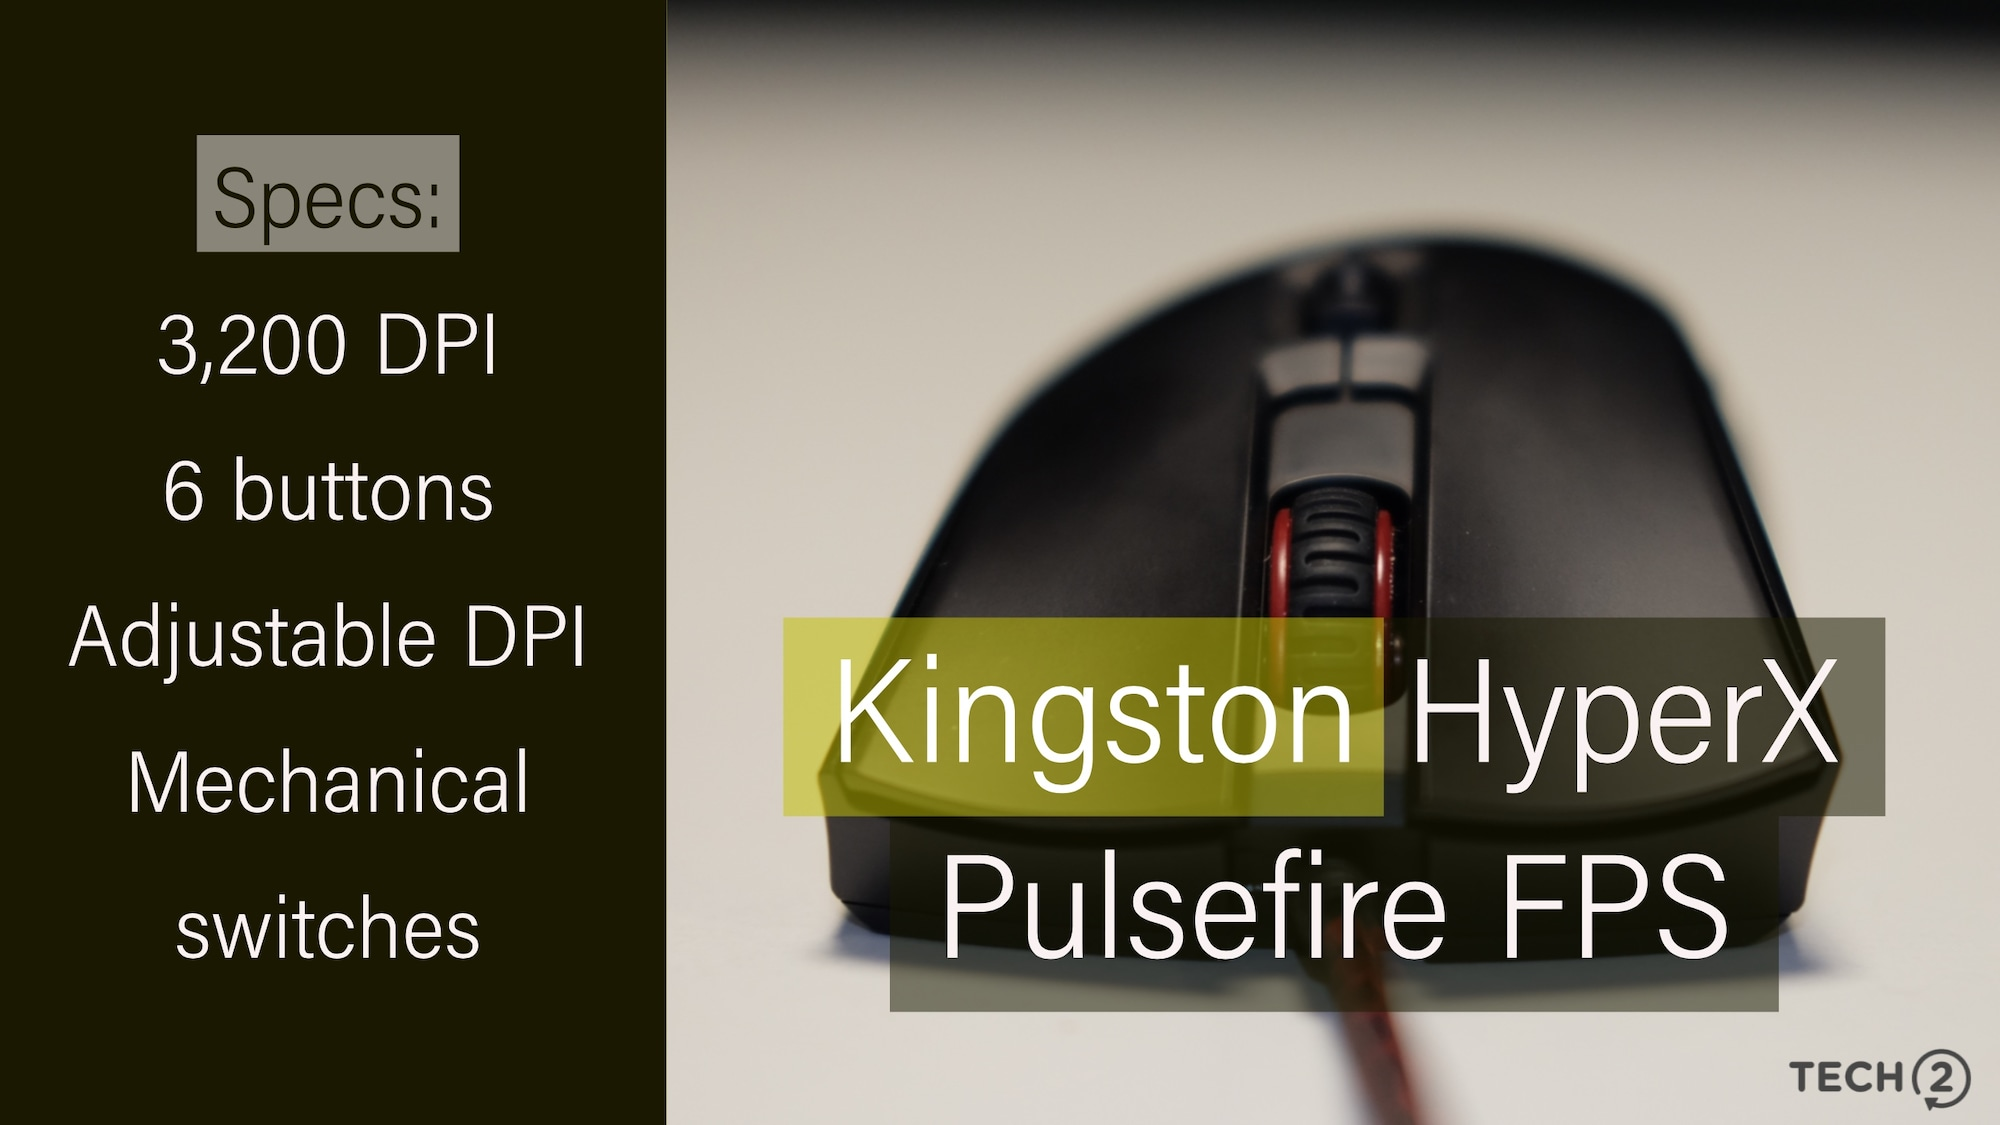 Kingston HyperX Pulsefire FPS gaming mouse review: For the